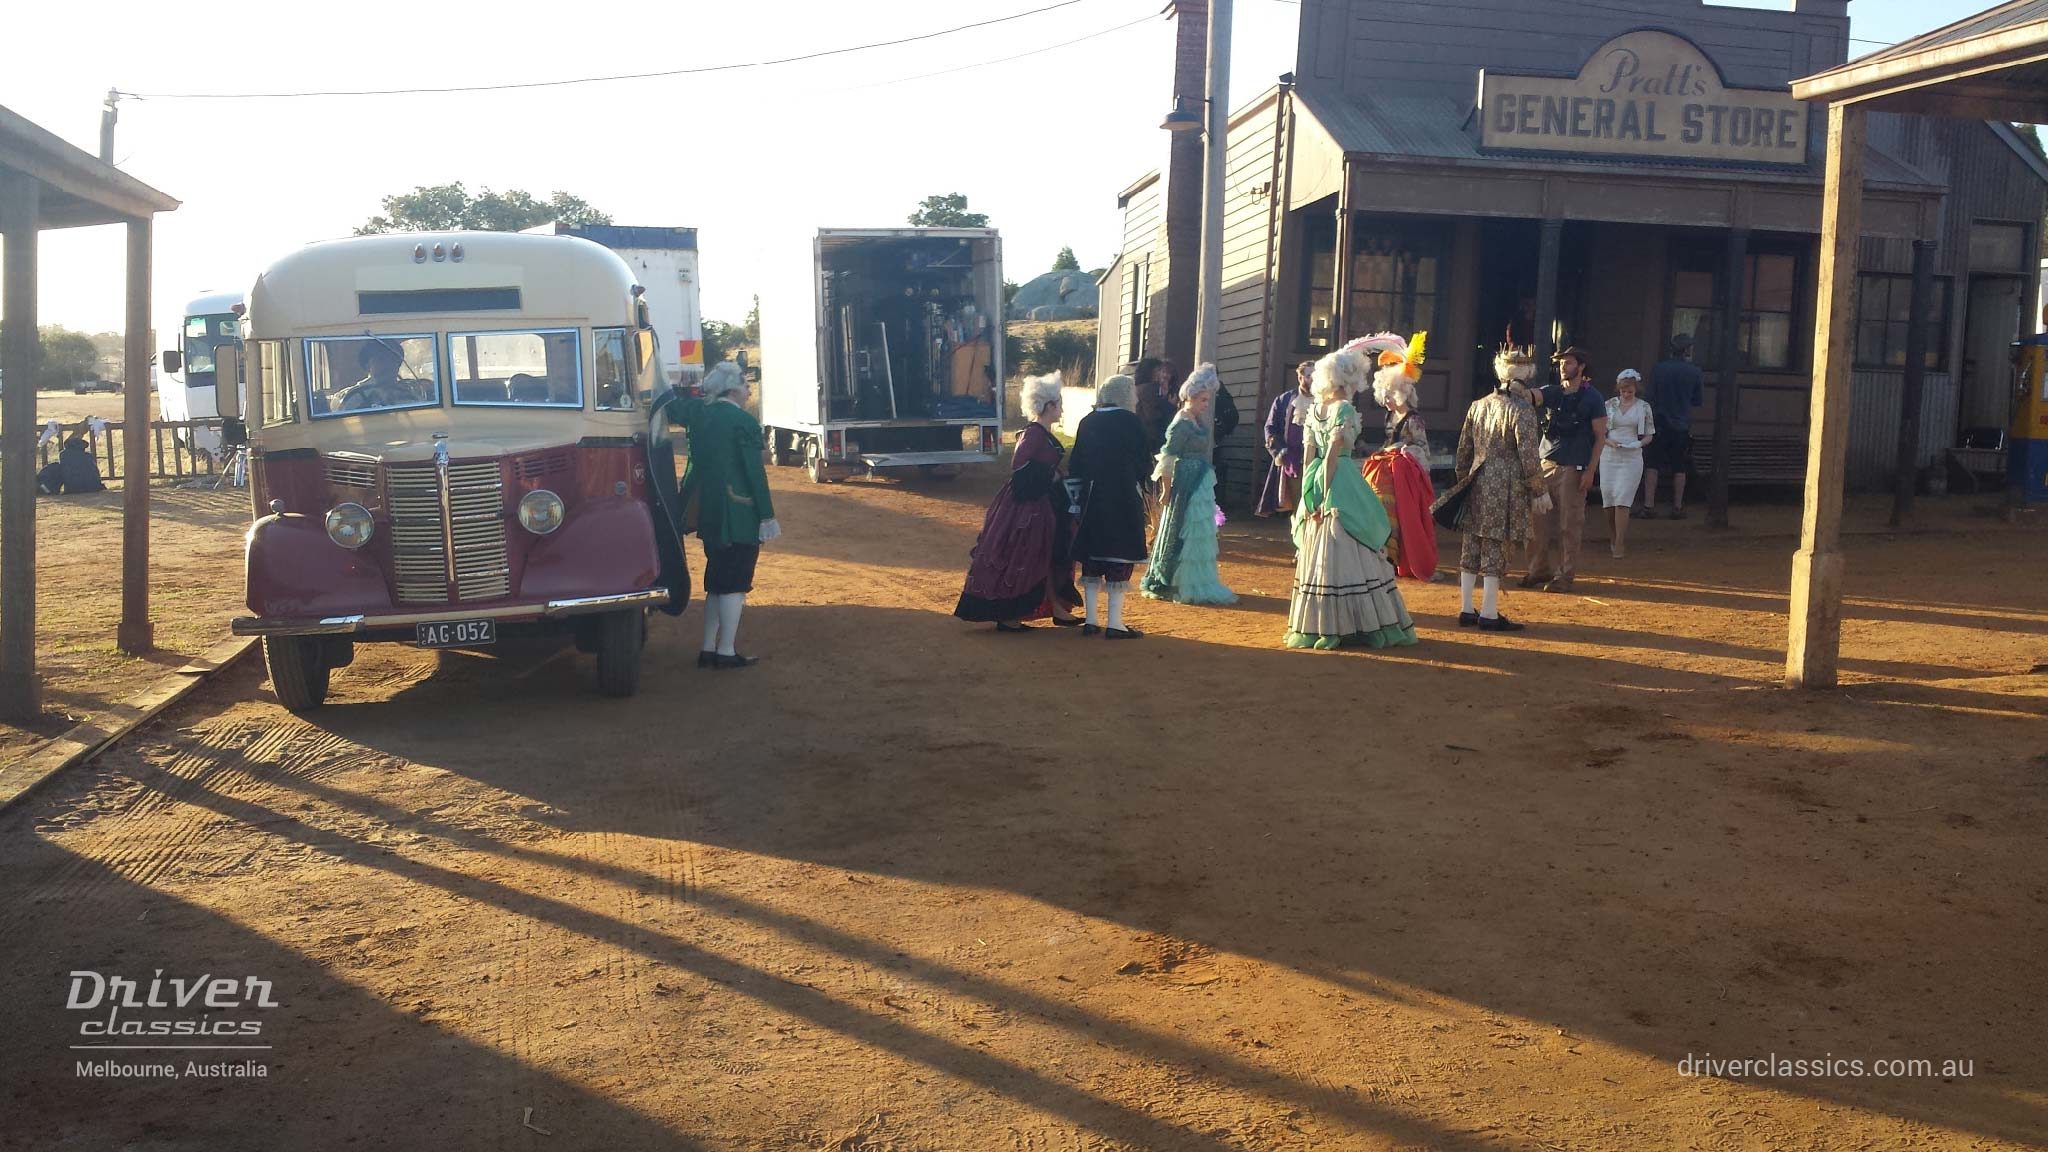 Bedford OB bus (1946 version), on the set of The Dressmaker movie, Cast & Crew at general store.